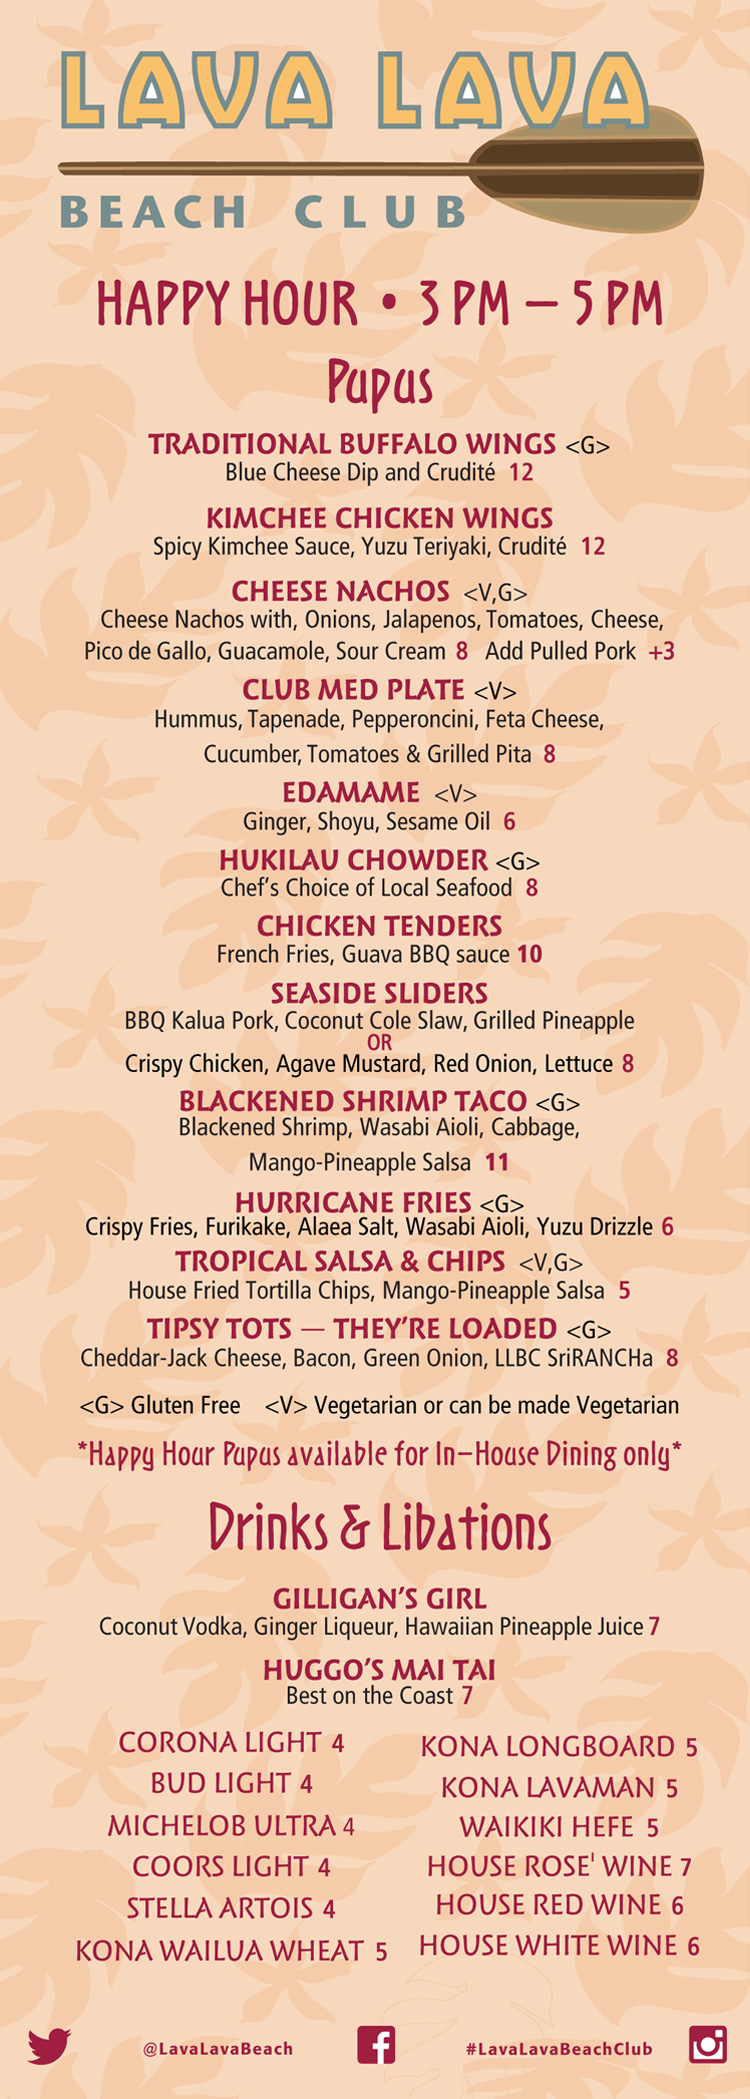 LLBC Big Island Happy Hour Menu 2018